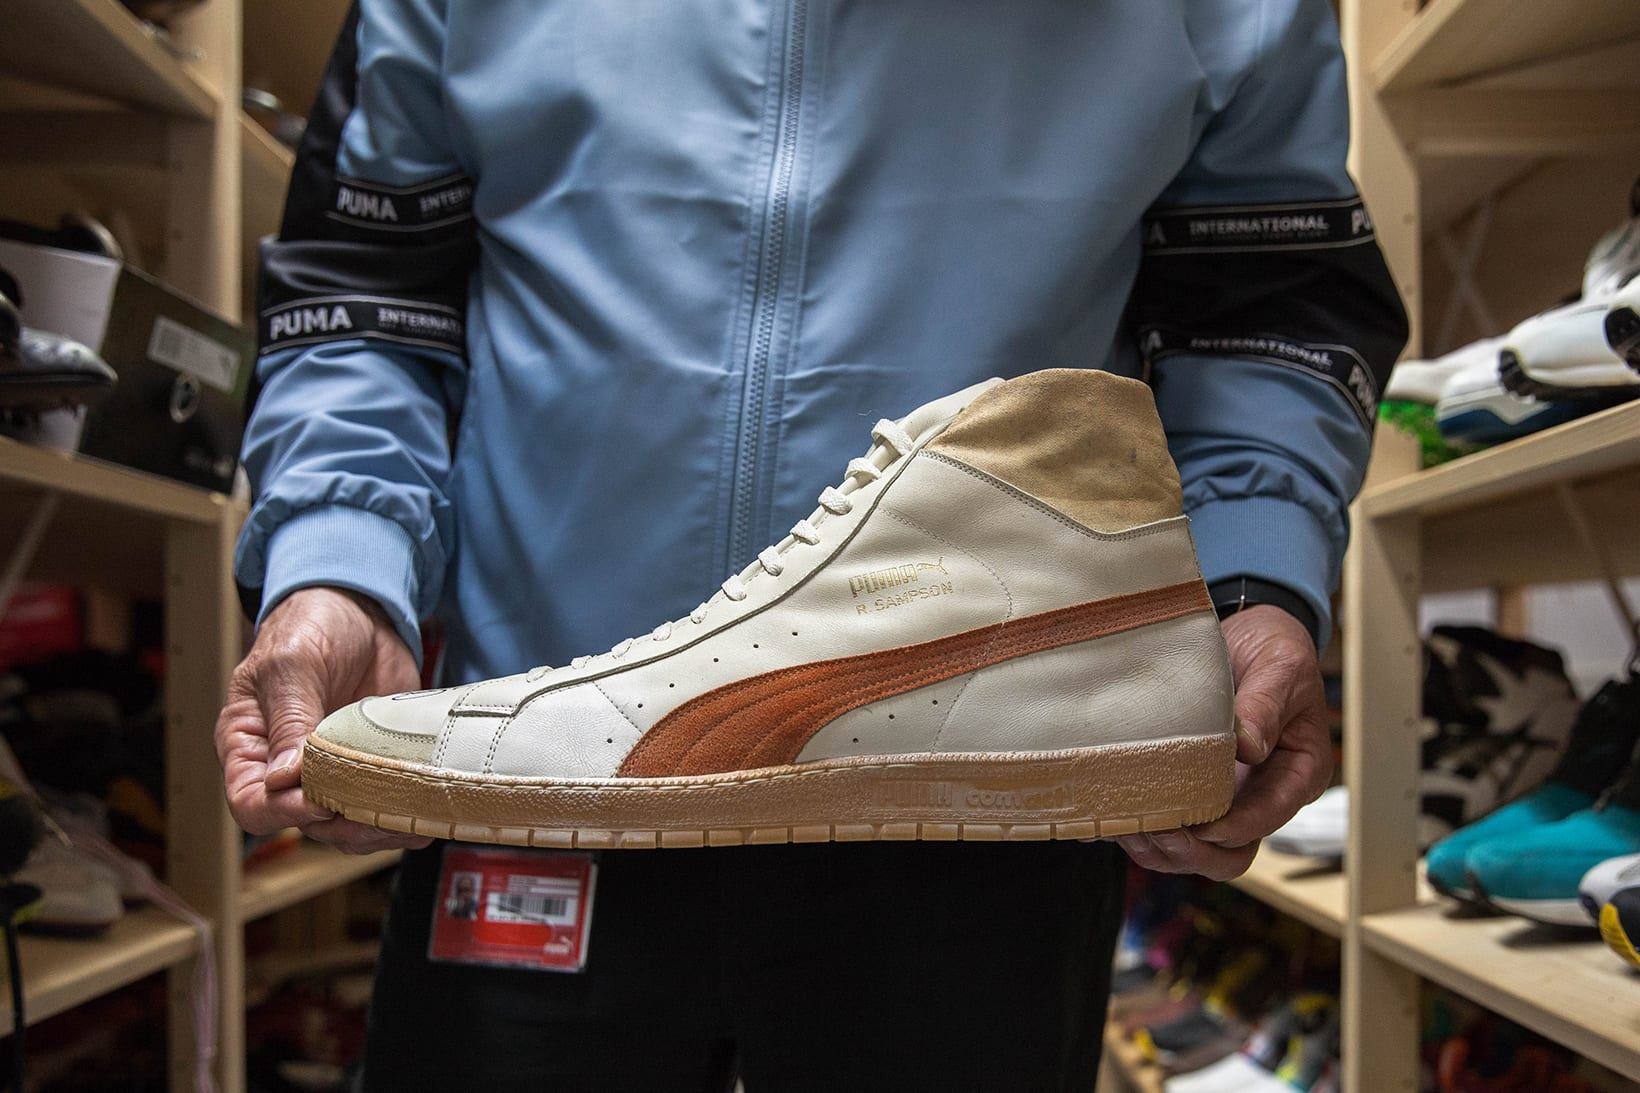 Timeline of The Puma Basketbal Sneakers — We Are Basket